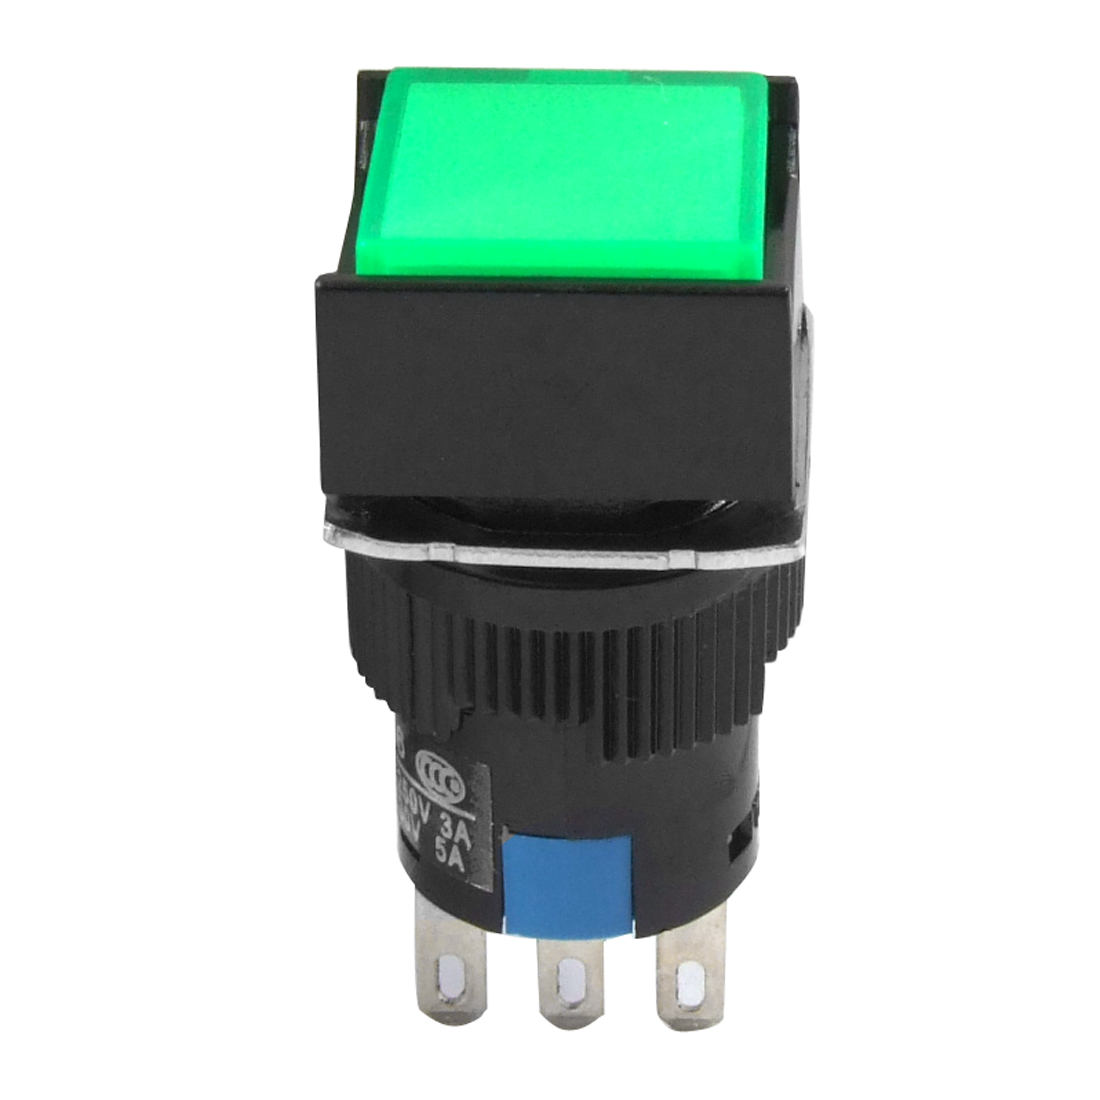 AC 3A/250V DC 5A/30V Green Square Self Locking Pushbutton Switch